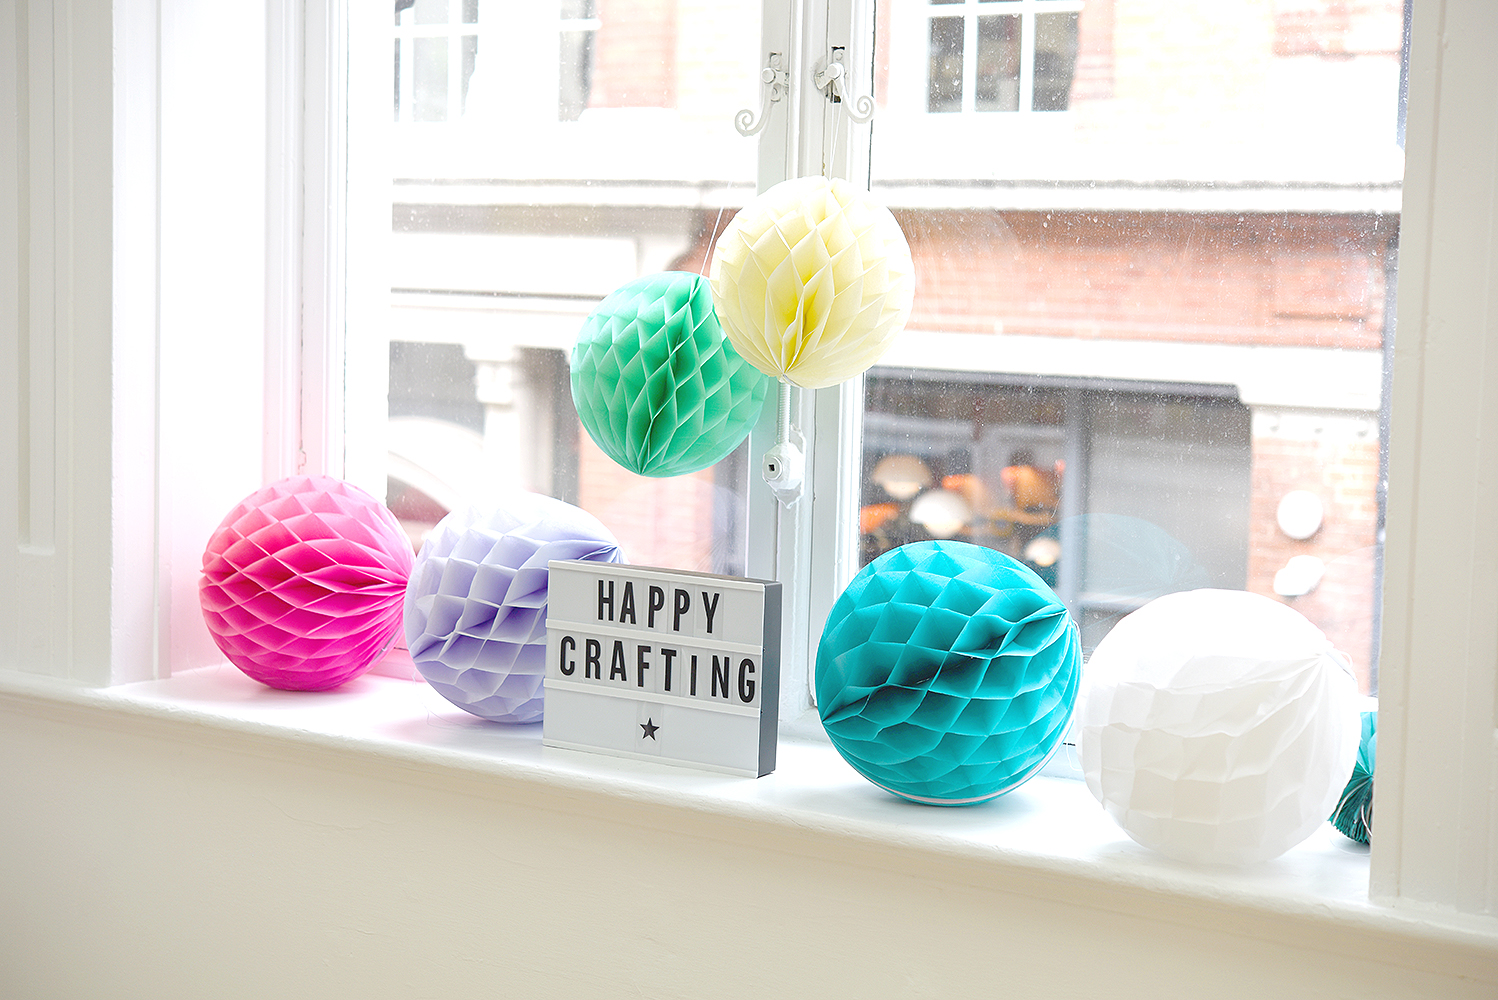 Paper lanterns in front of the large window with happy crafting lightbox